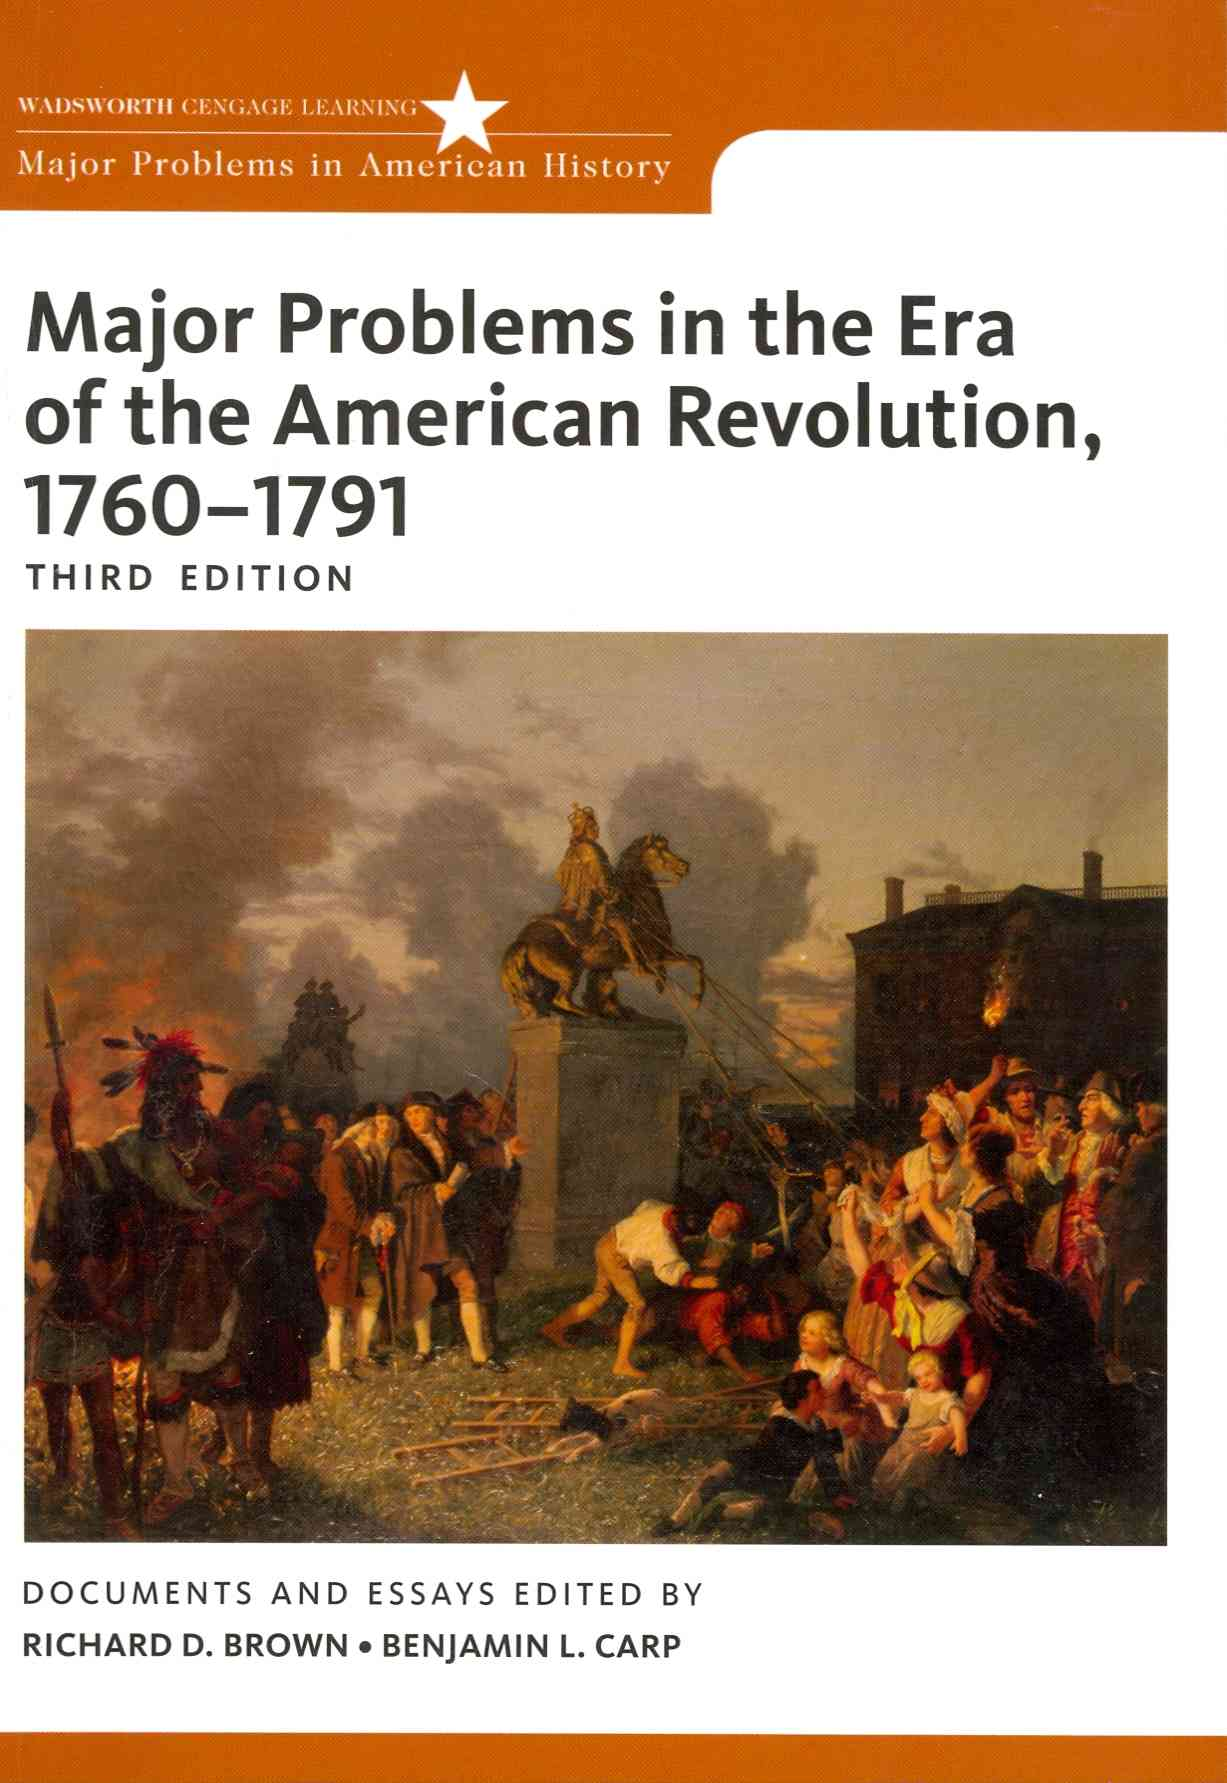 Major Problems in the Era of the American Revolution, 1760-1791 By Brown, Richard D.